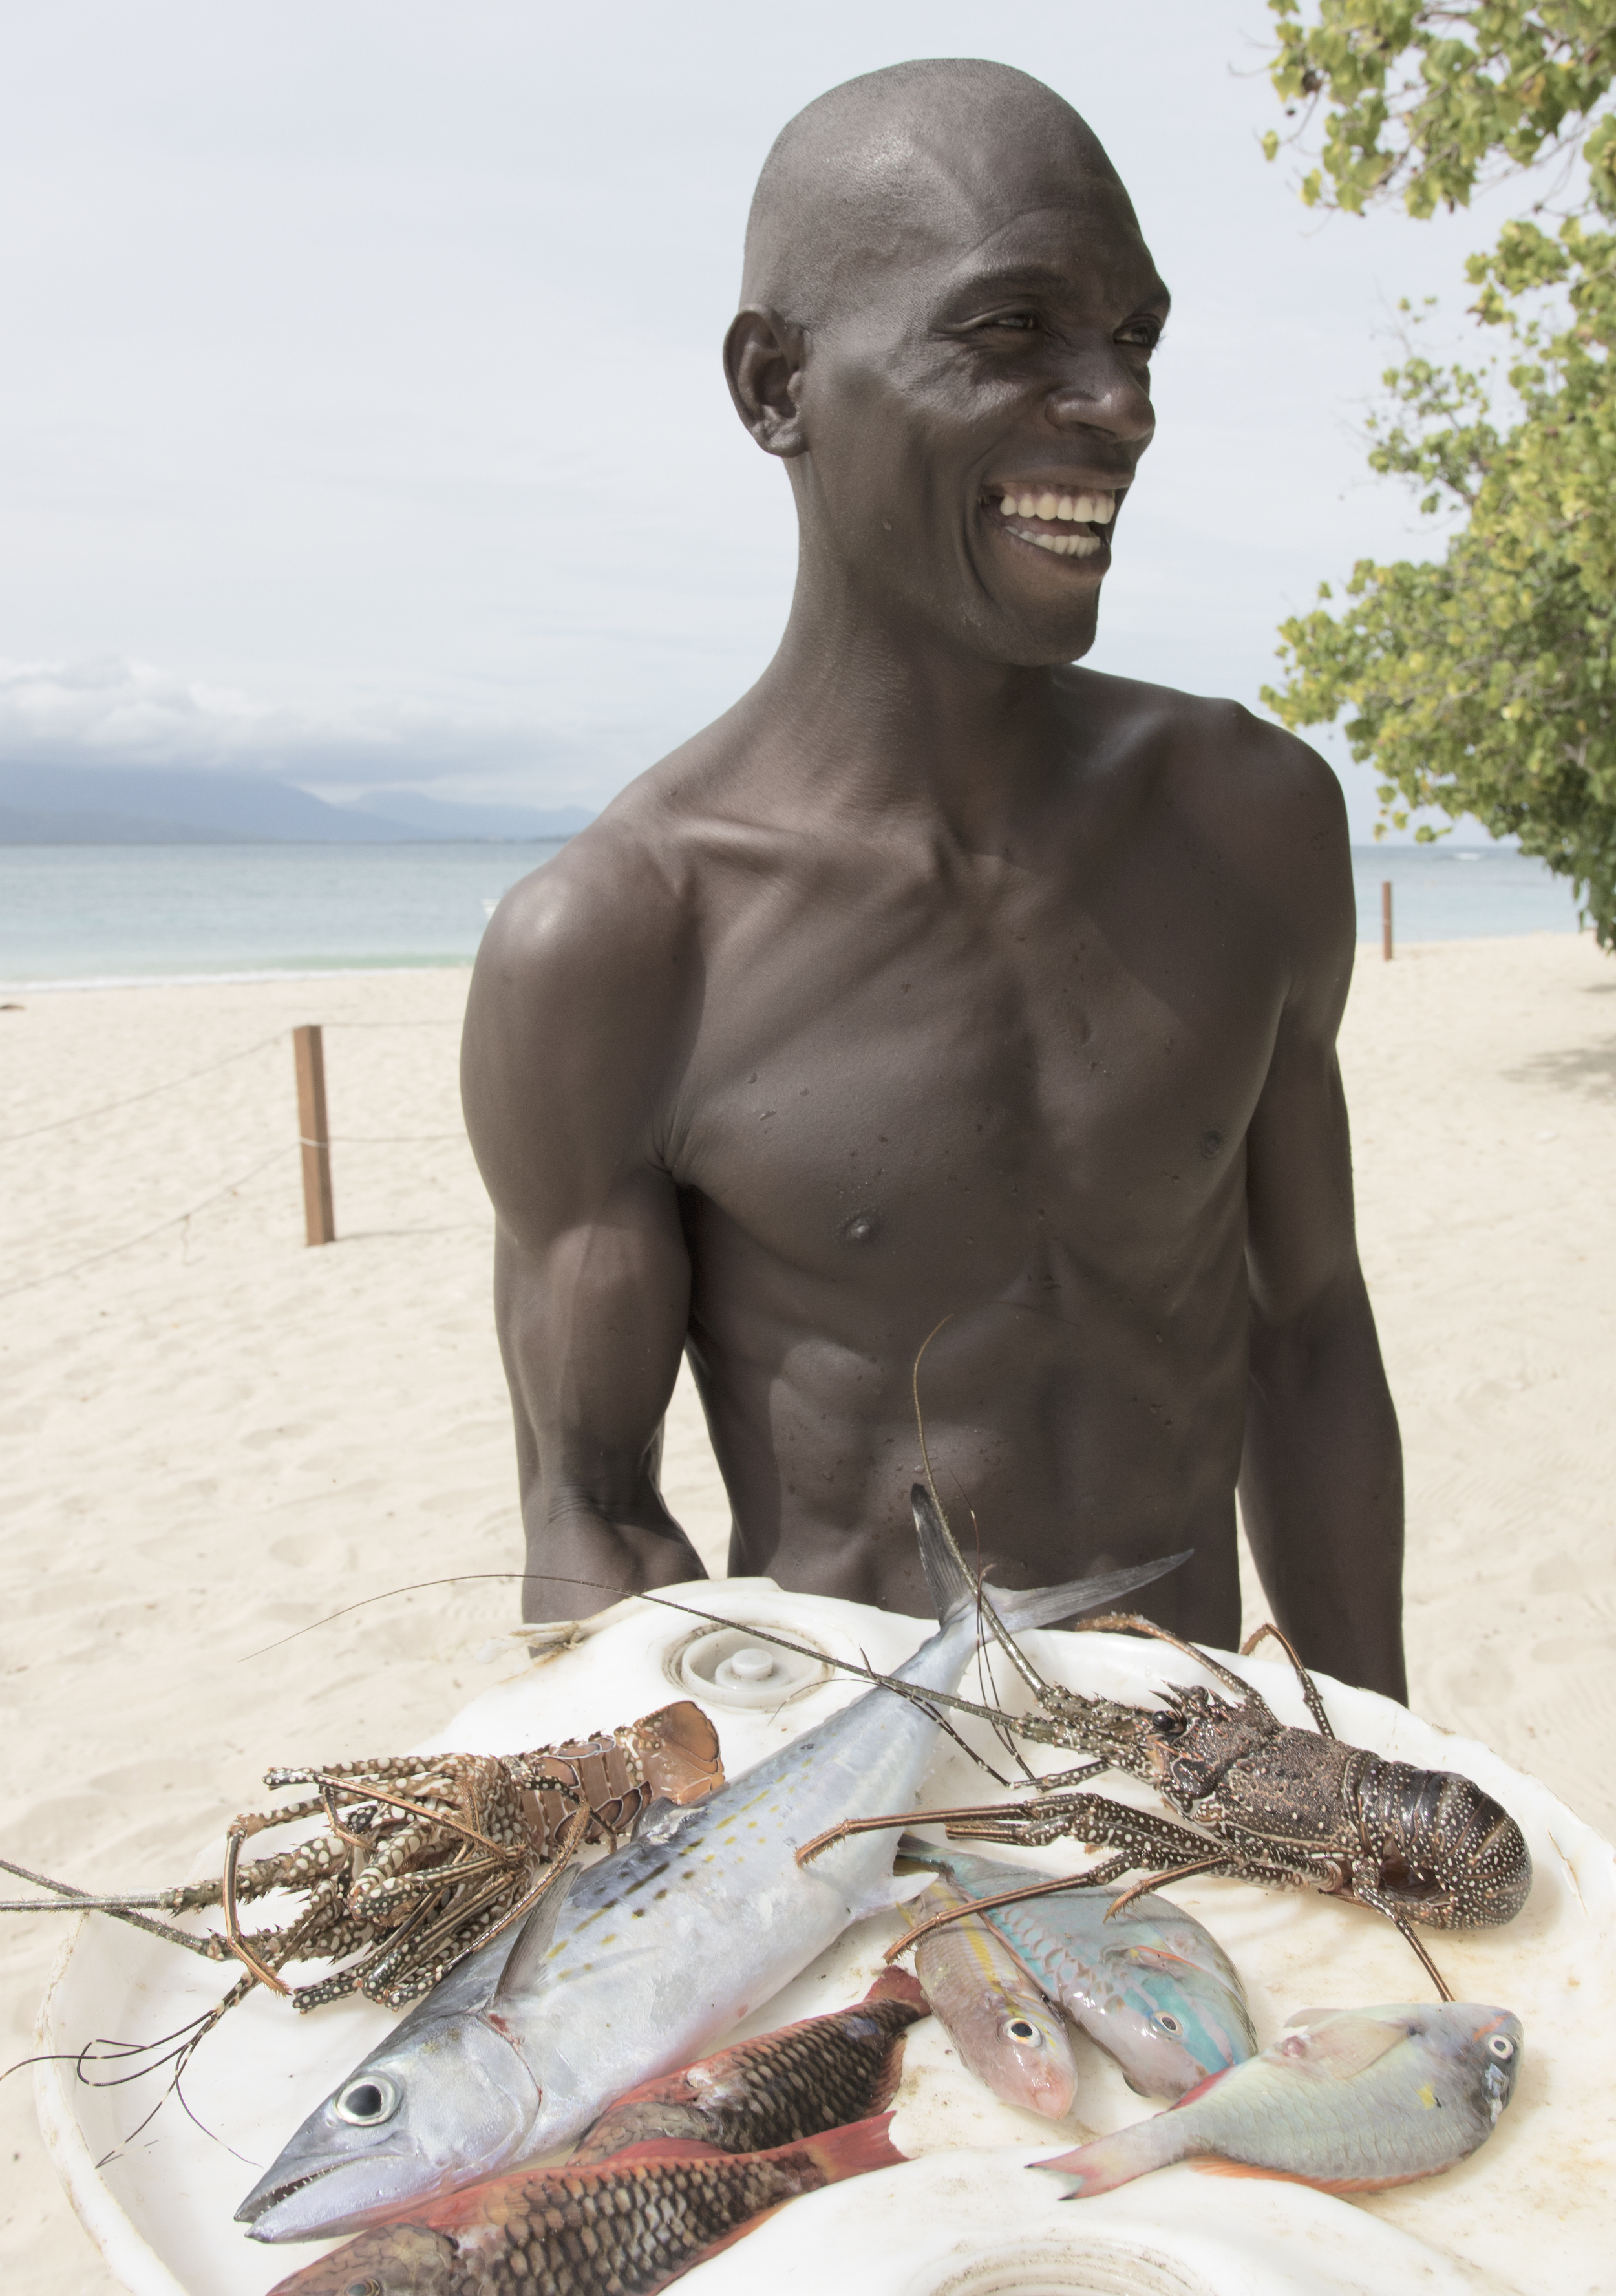 A FISHERMAN SHOWS OFF HIS CATCH AT AMIGA ISLAND, NORTHERN HAITI.